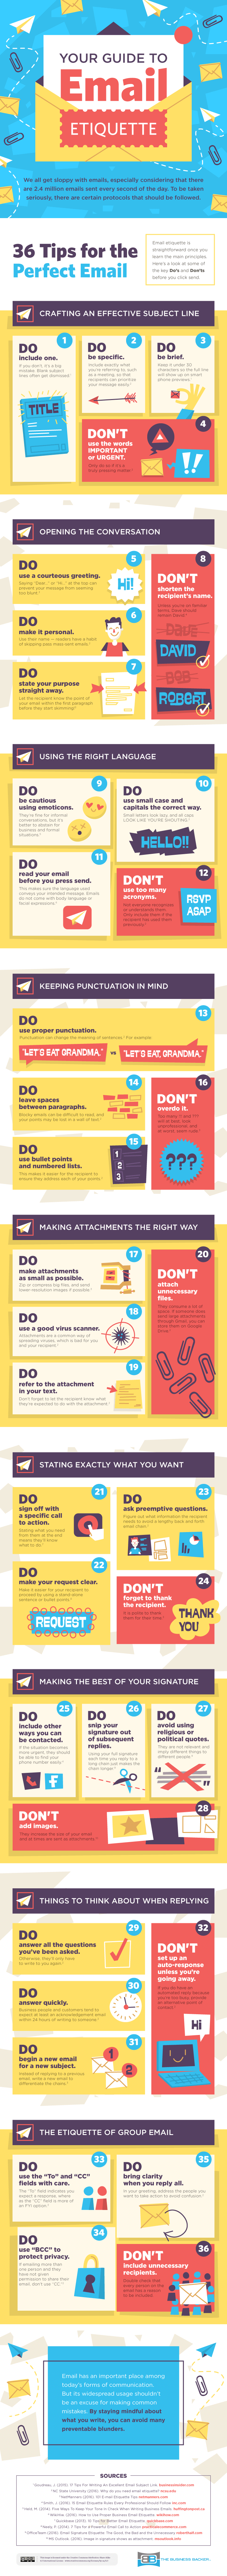 Guide to Email Etiquette Infographic